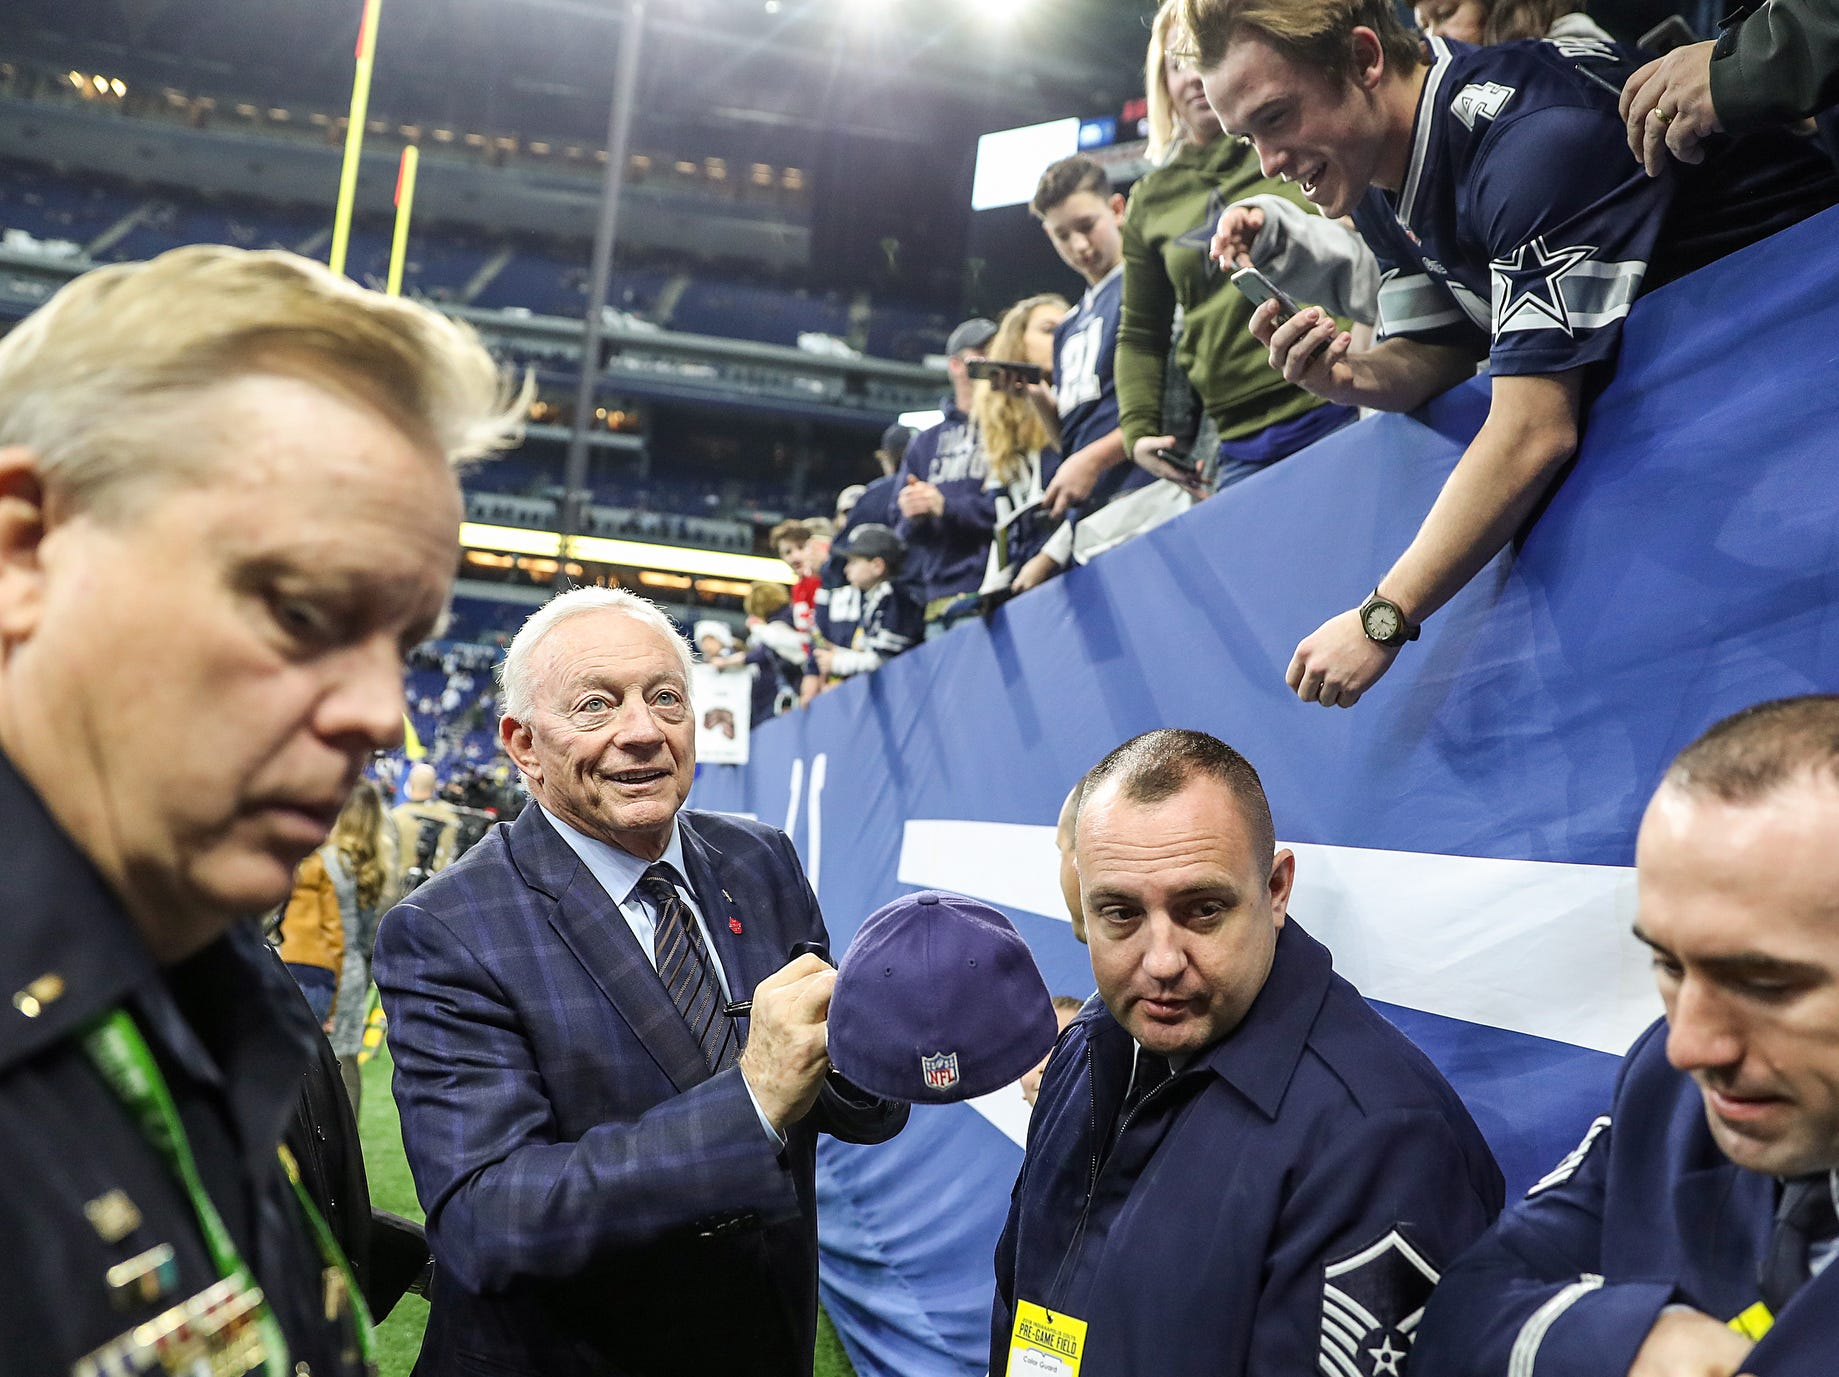 Dallas Cowboys owner Jerry Jones signs autographs for fans before the team faced the Indianapolis Colts in week 15 at Lucas Oil Stadium in Indianapolis, Sunday, Dec. 16, 2018.